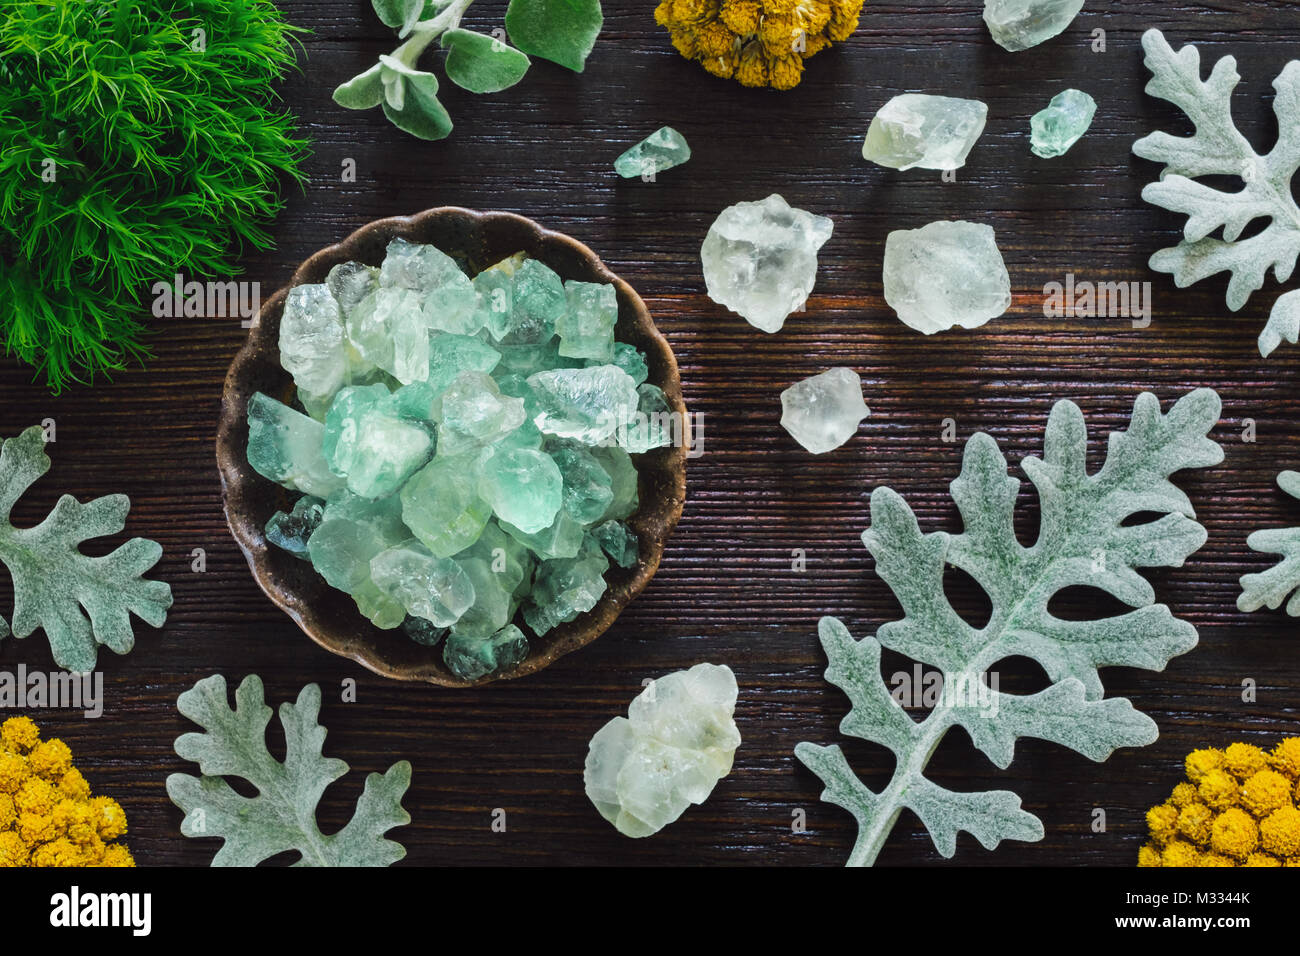 Fluorite Crystals with Dusty Miller on Dark Wood Table Stock Photo